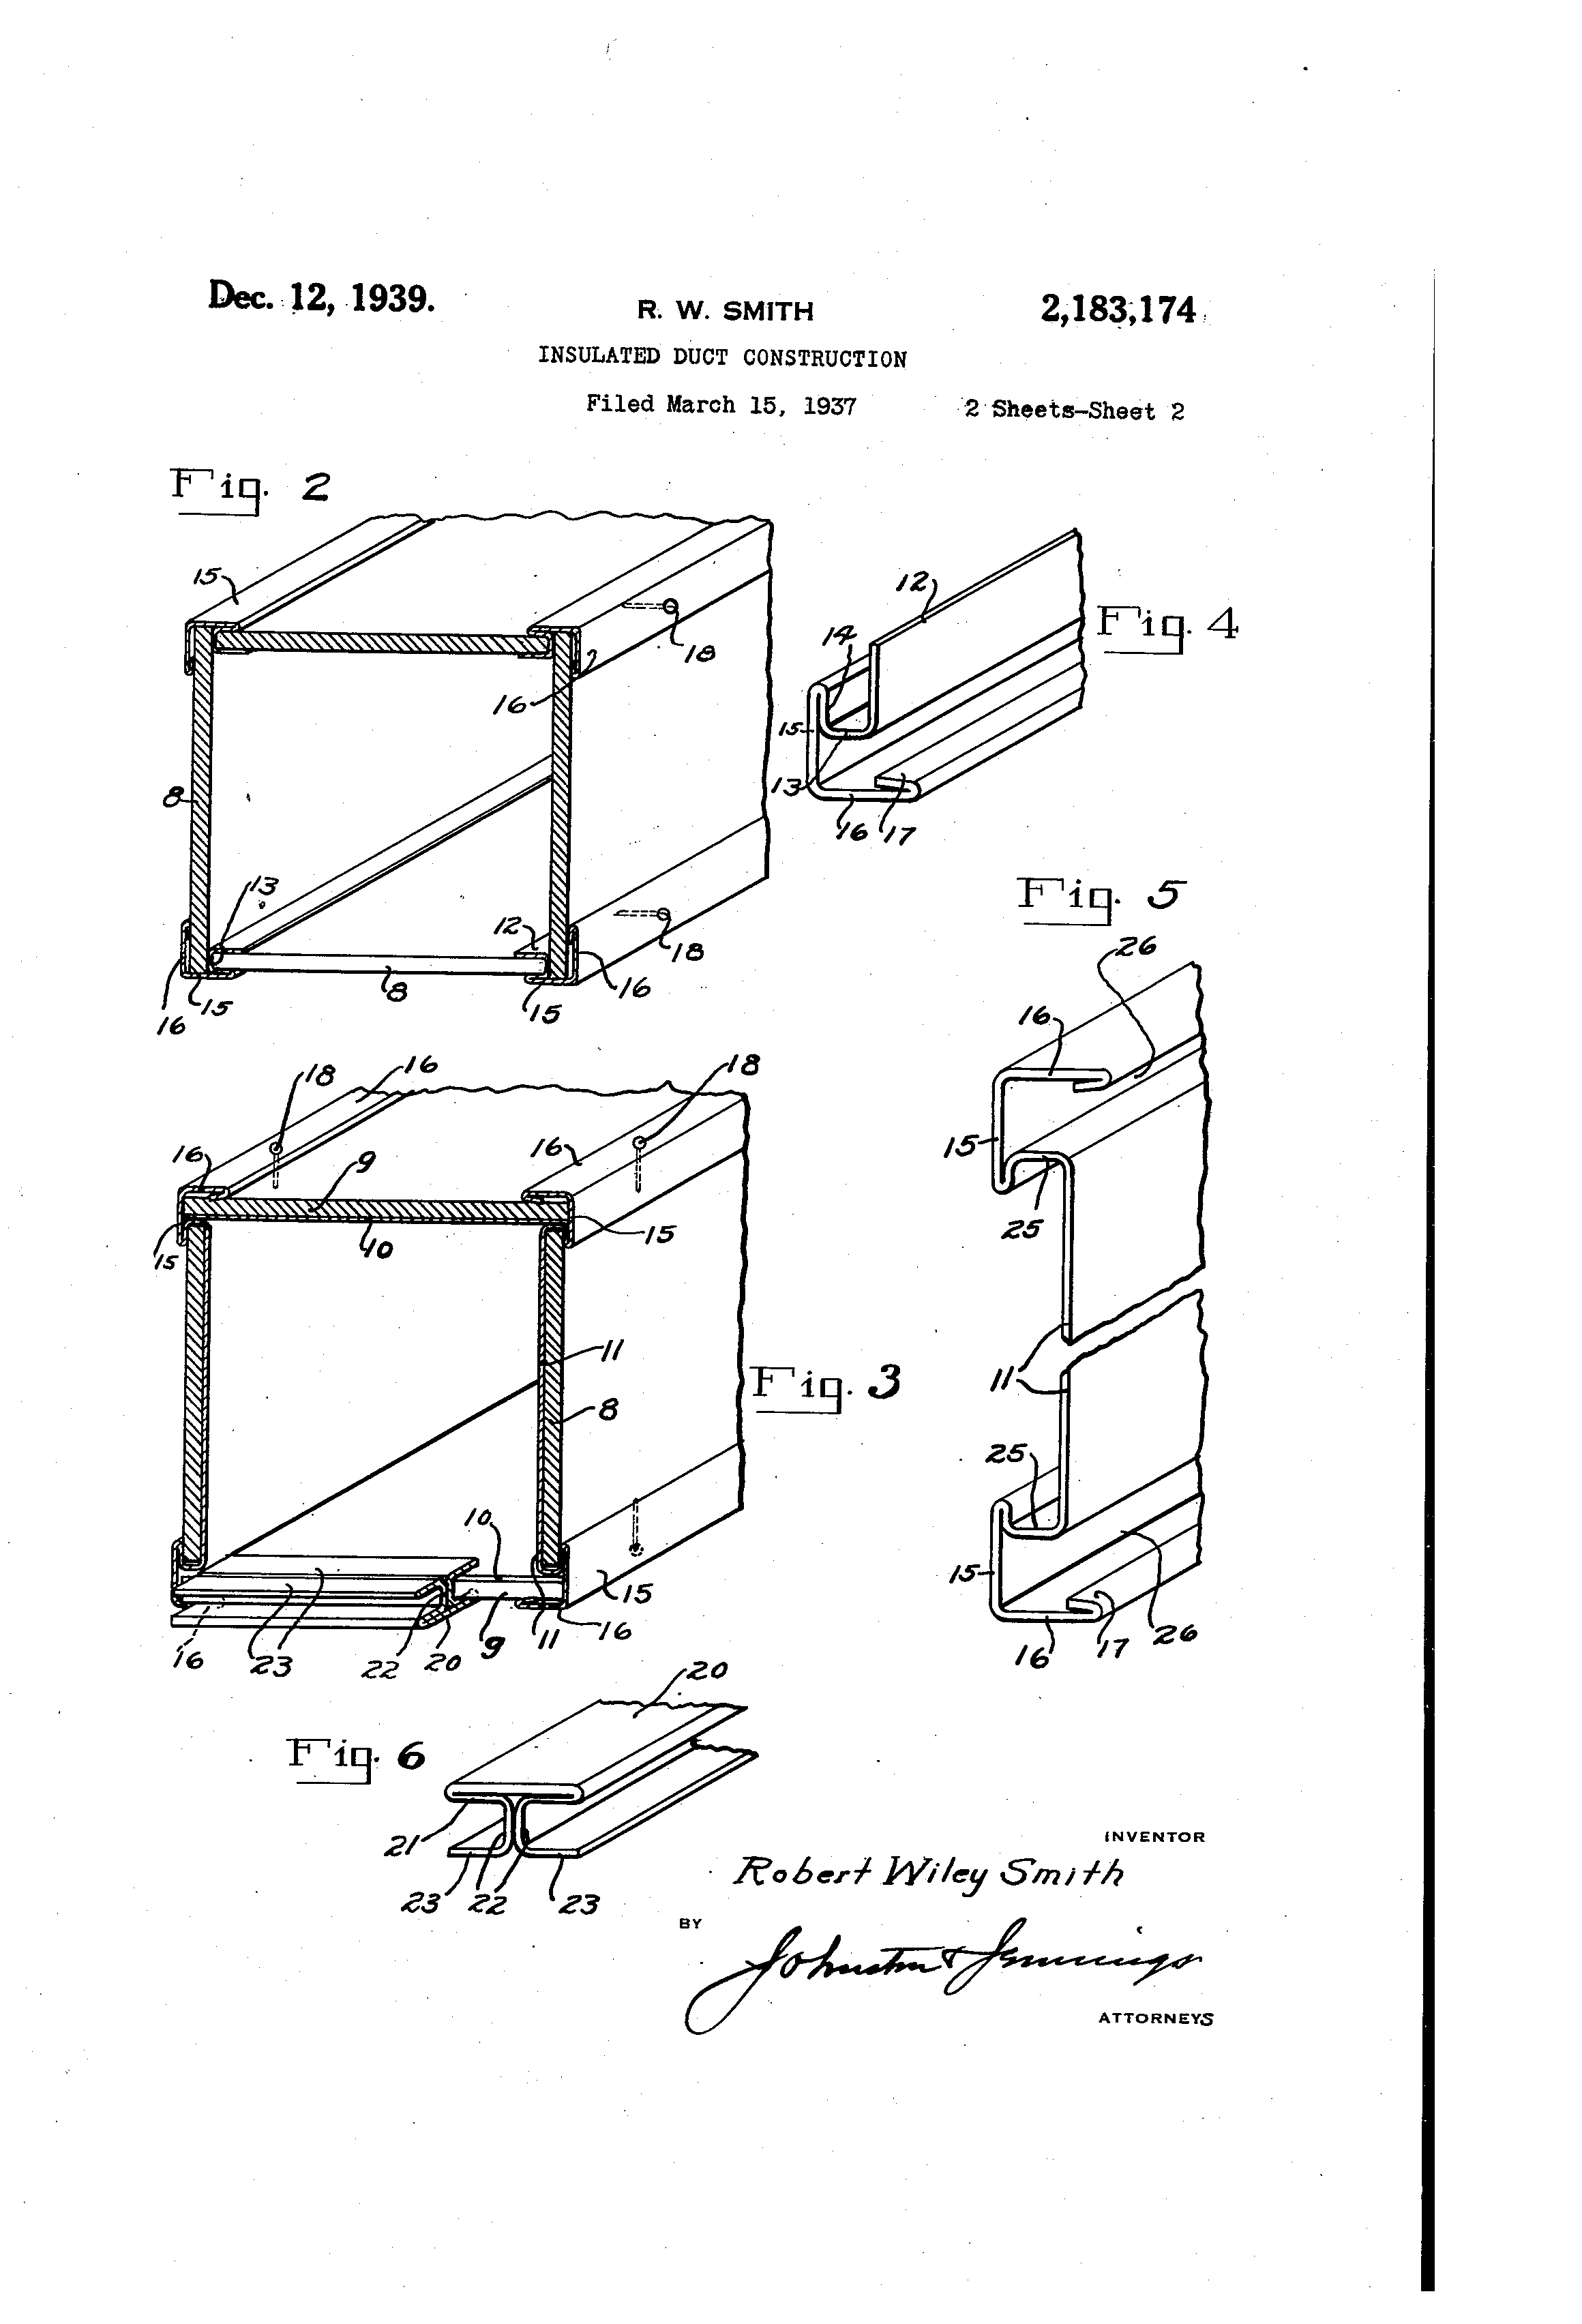 patent us2183174 - insulated duct construction